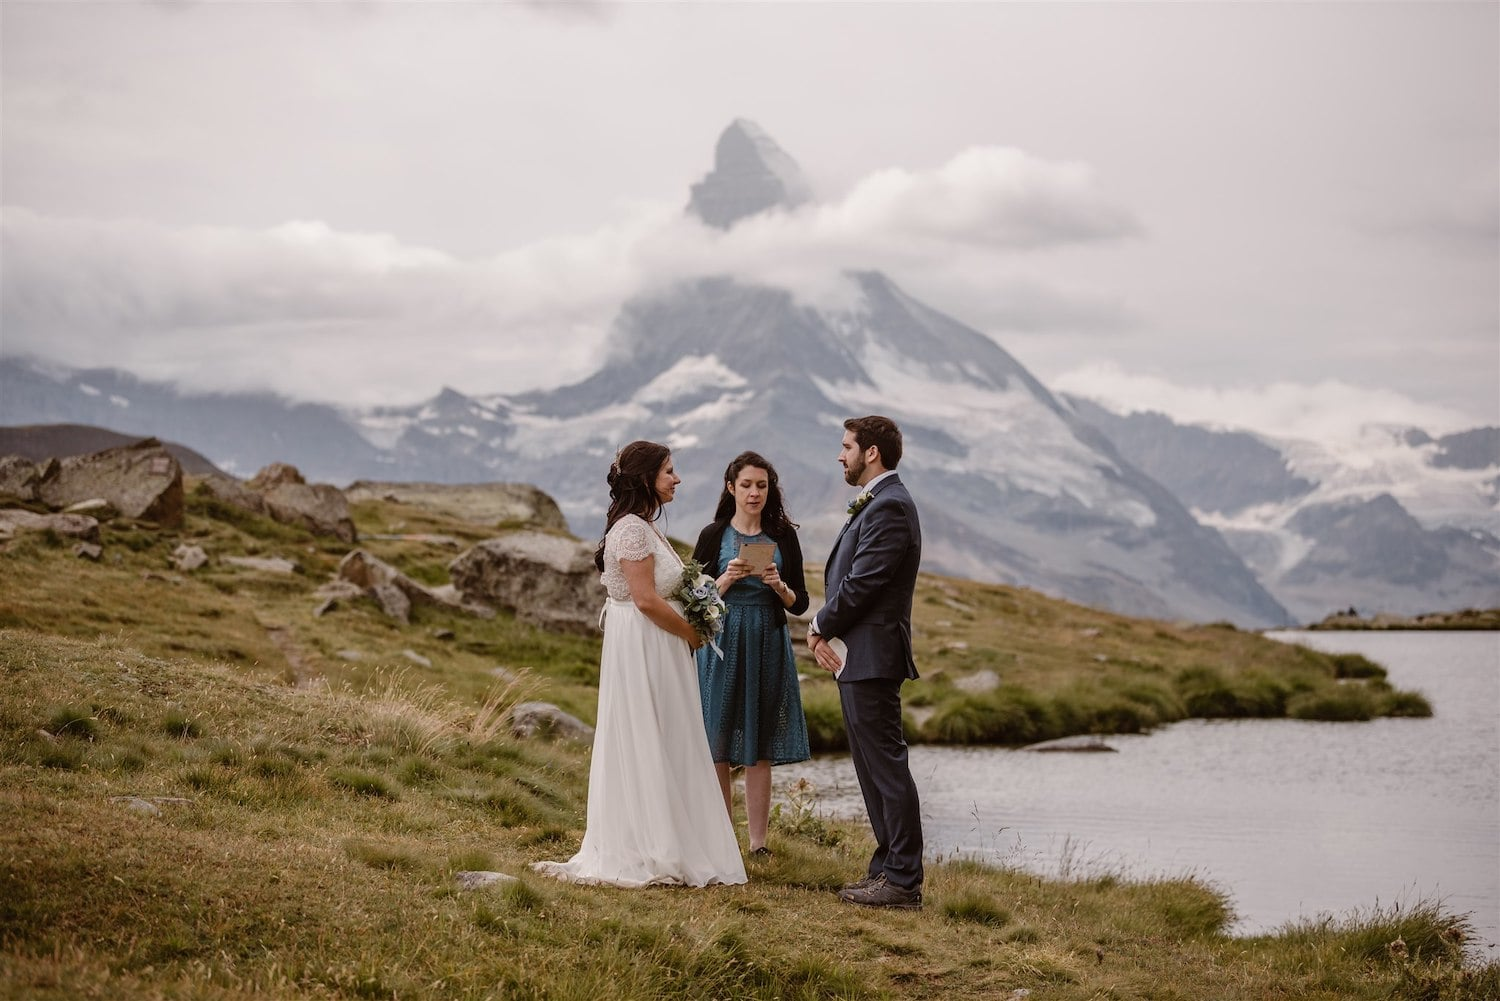 A summer elopement in Zermatt, Switzerland